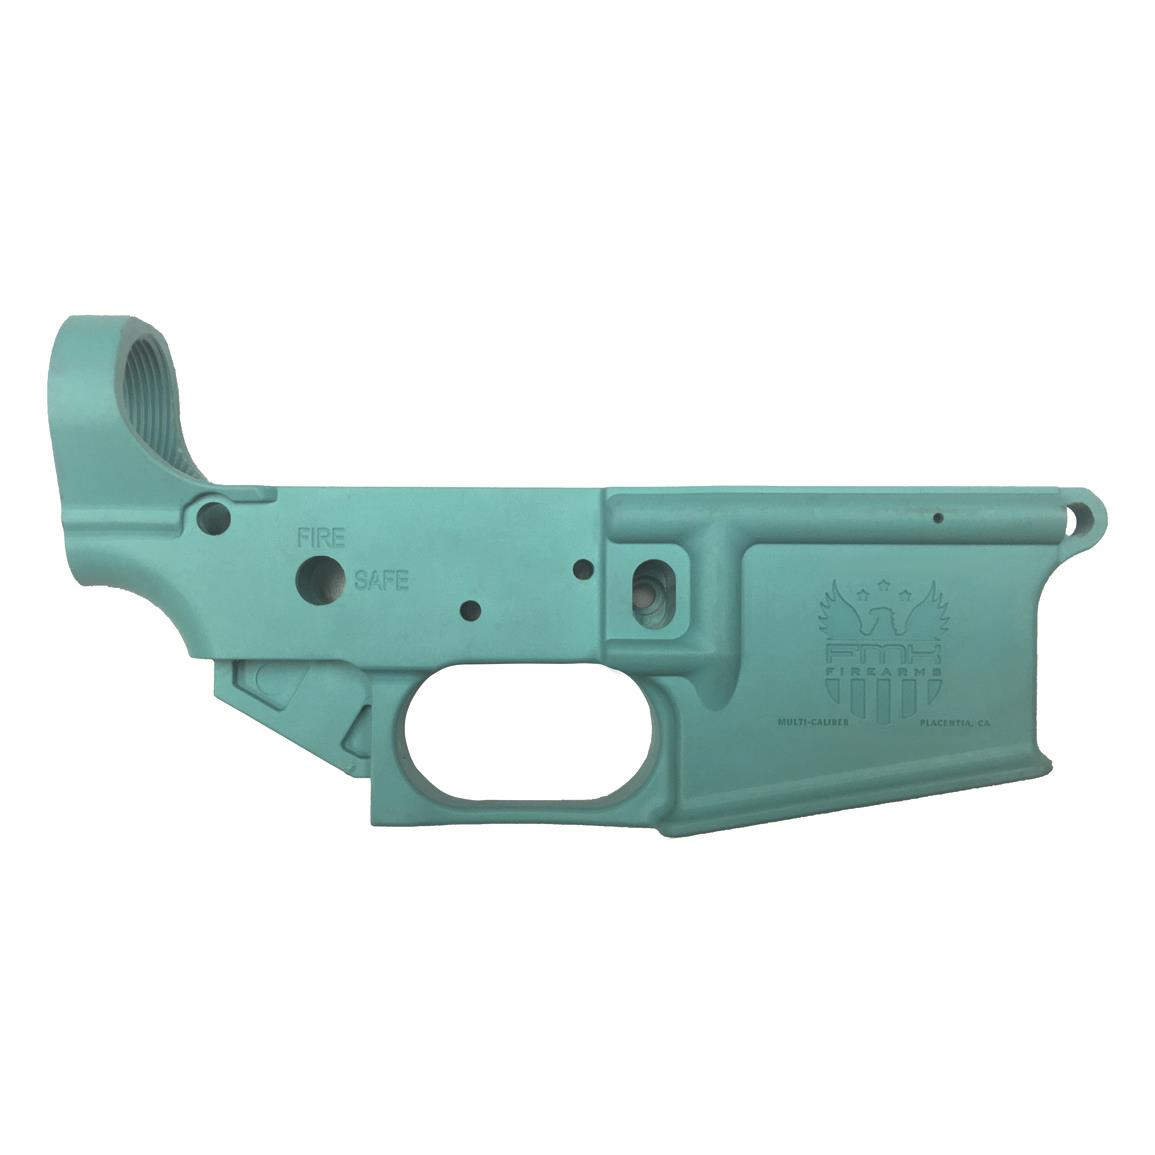 FMK Firearms AR1 eXtreme Multi-Caliber AR-15 Stripped Polymer Lower Receiver, Blue Jay